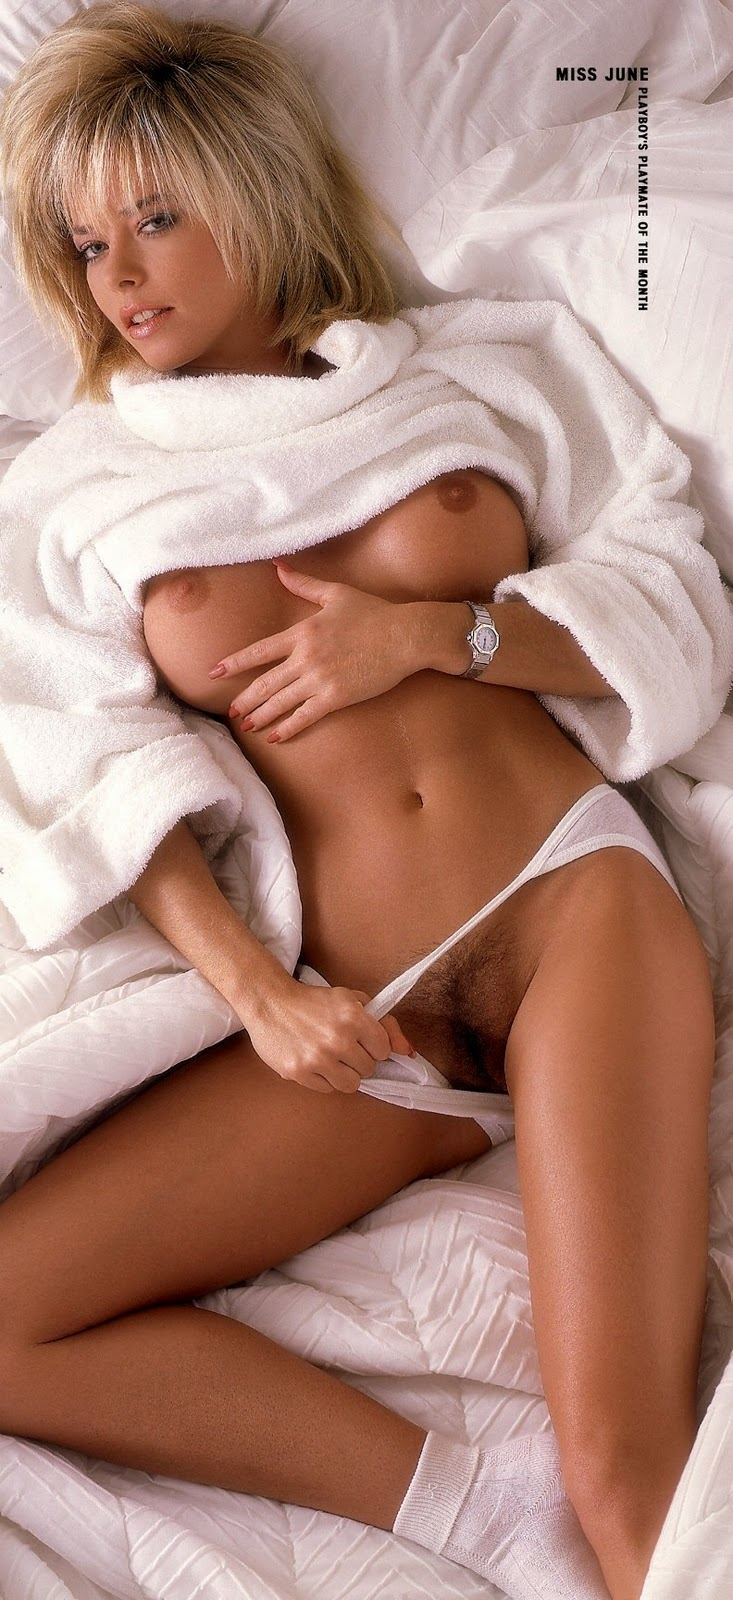 Very Playmate nude playmate